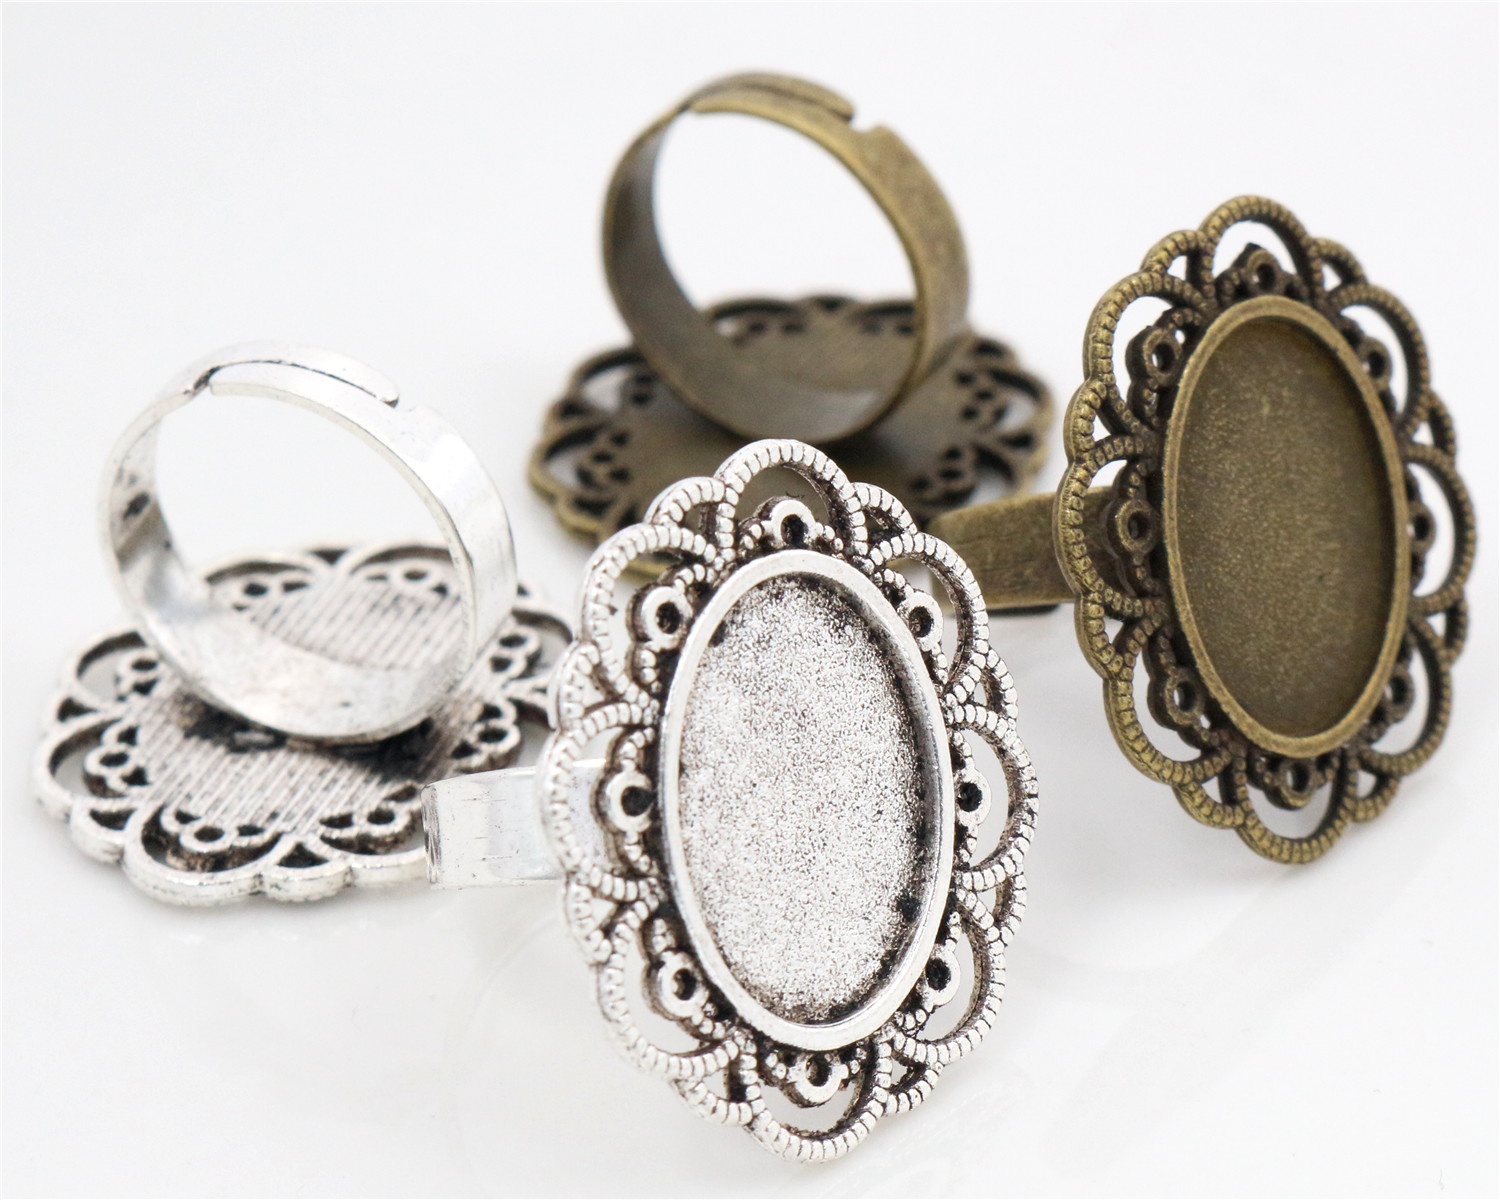 13x18mm 5pcs Antique Silver And Bronze Plated Brass Oval Adjustable Ring Settings Blank/Base,Fit 13x18mm Glass Cabochons